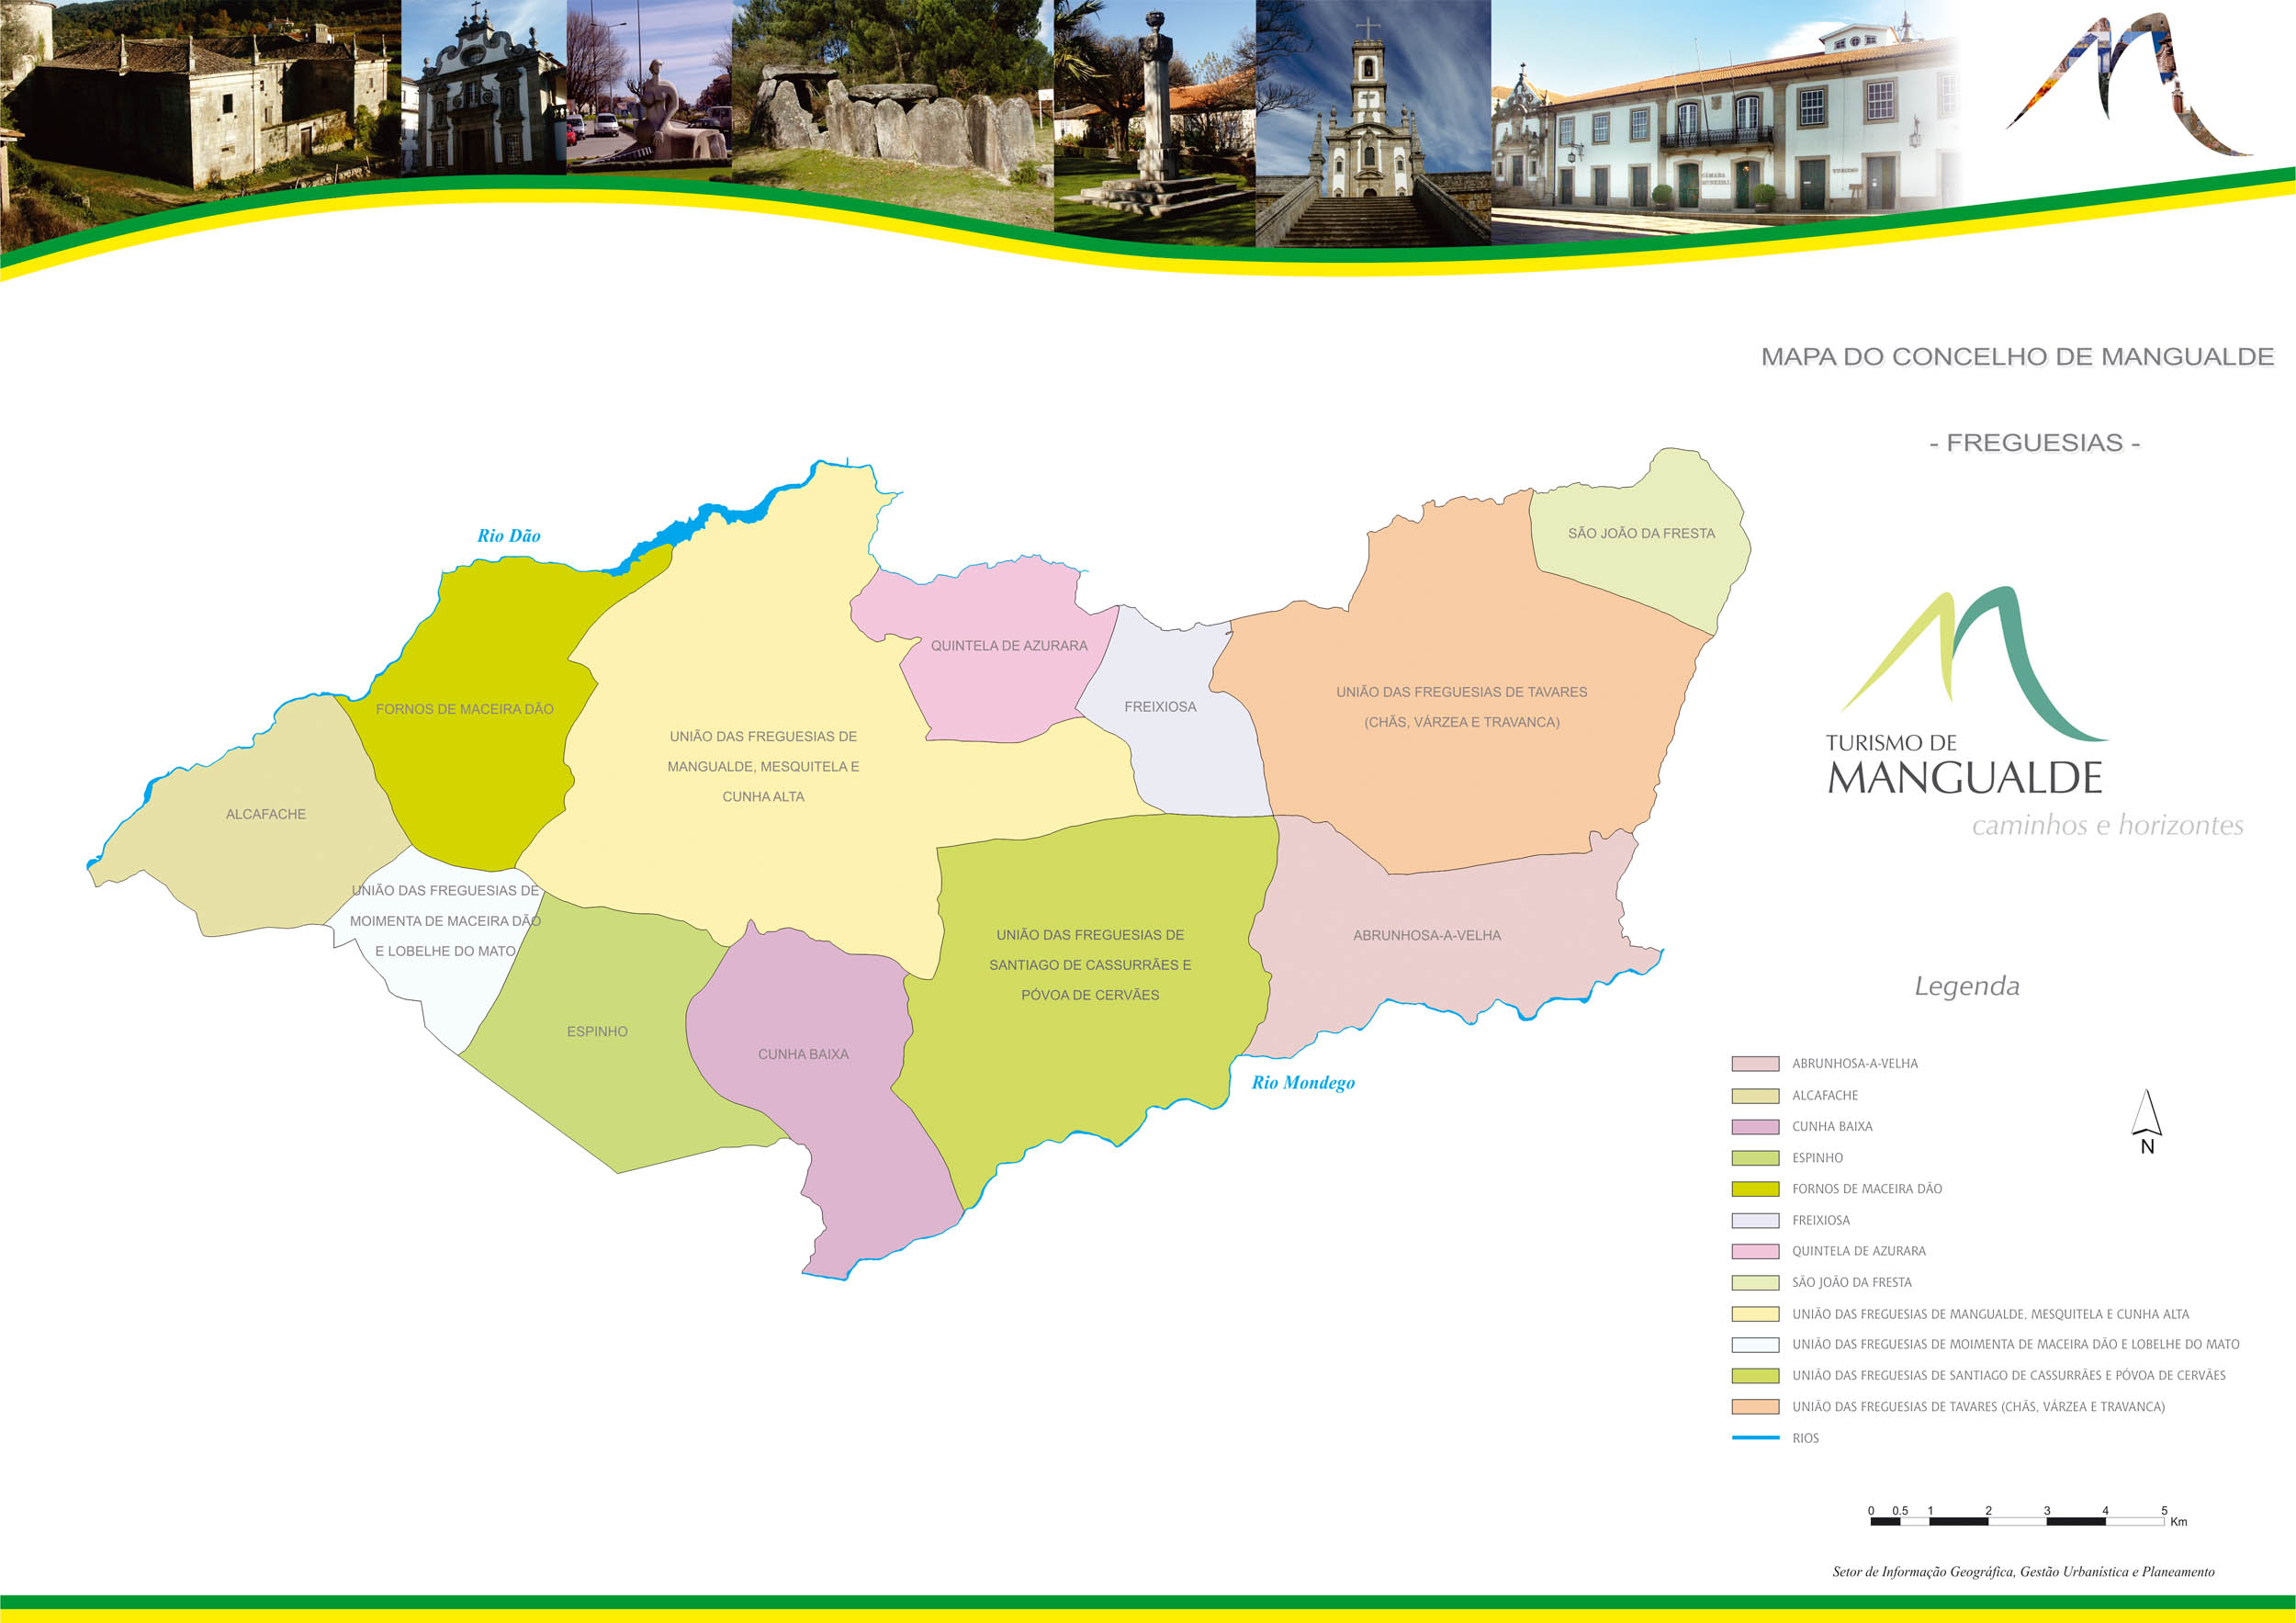 mapa do concelho de mangualde Mapas de Mangualde   Câmara Municipal de Mangualde mapa do concelho de mangualde